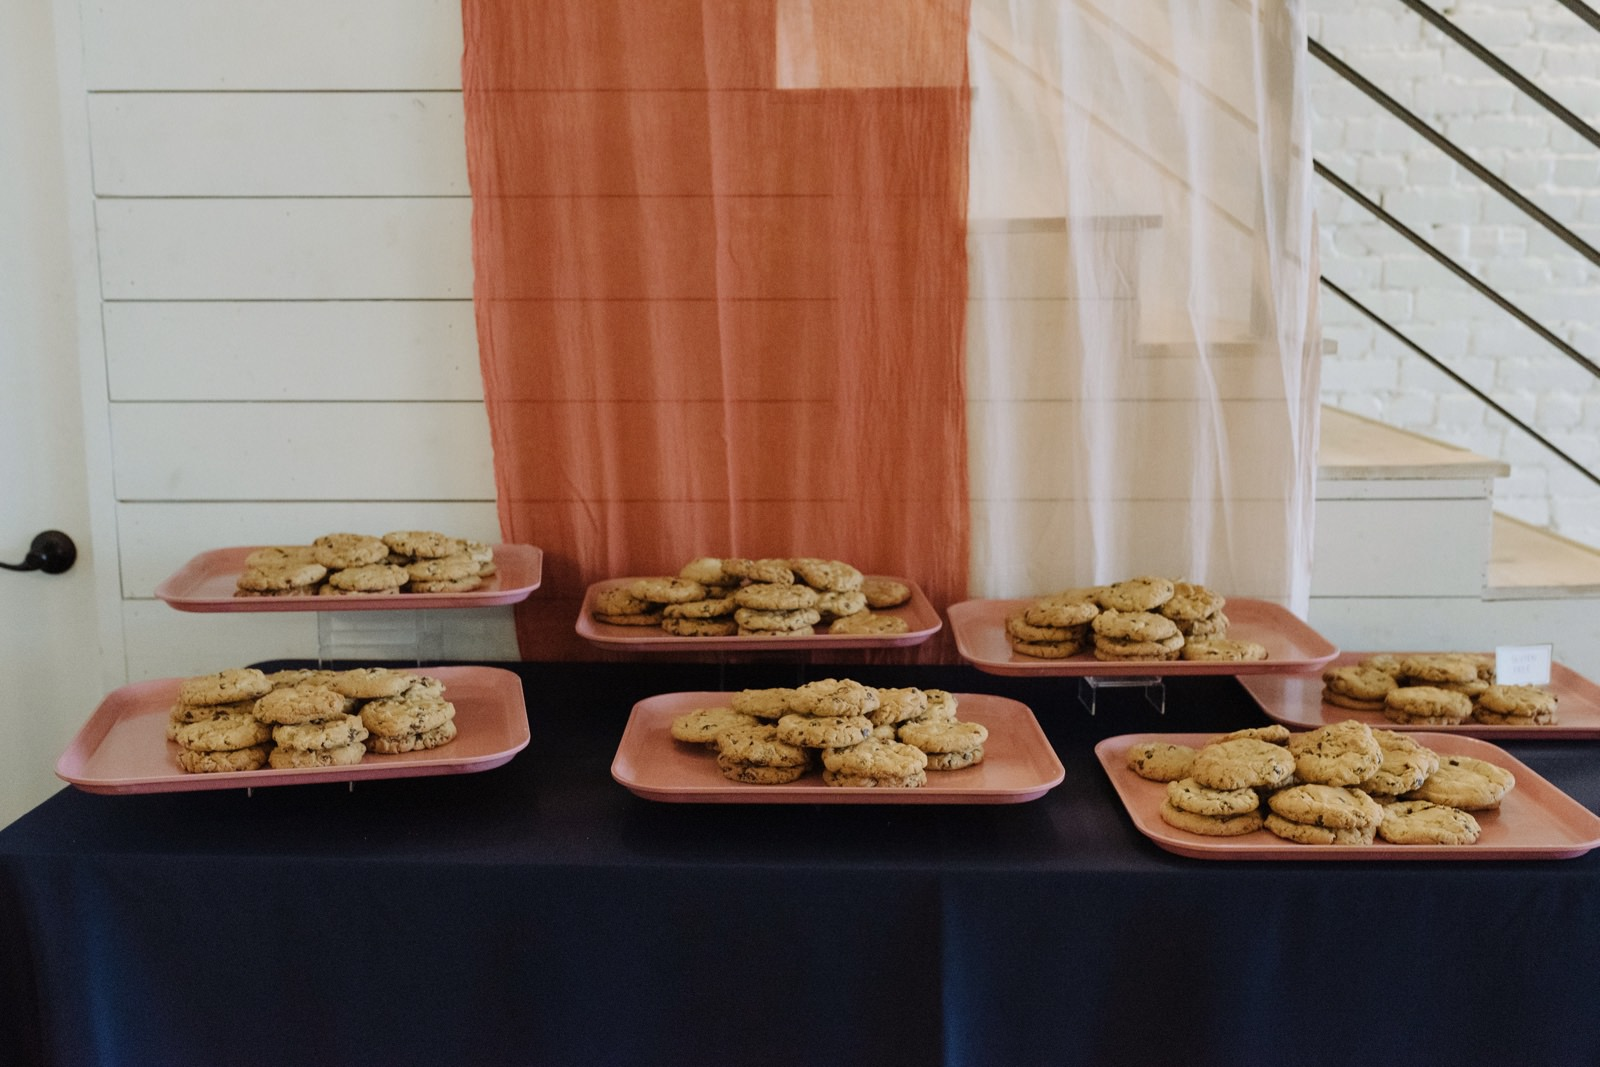 Homemade cookies wedding dessert table served on pink cafeteria trays